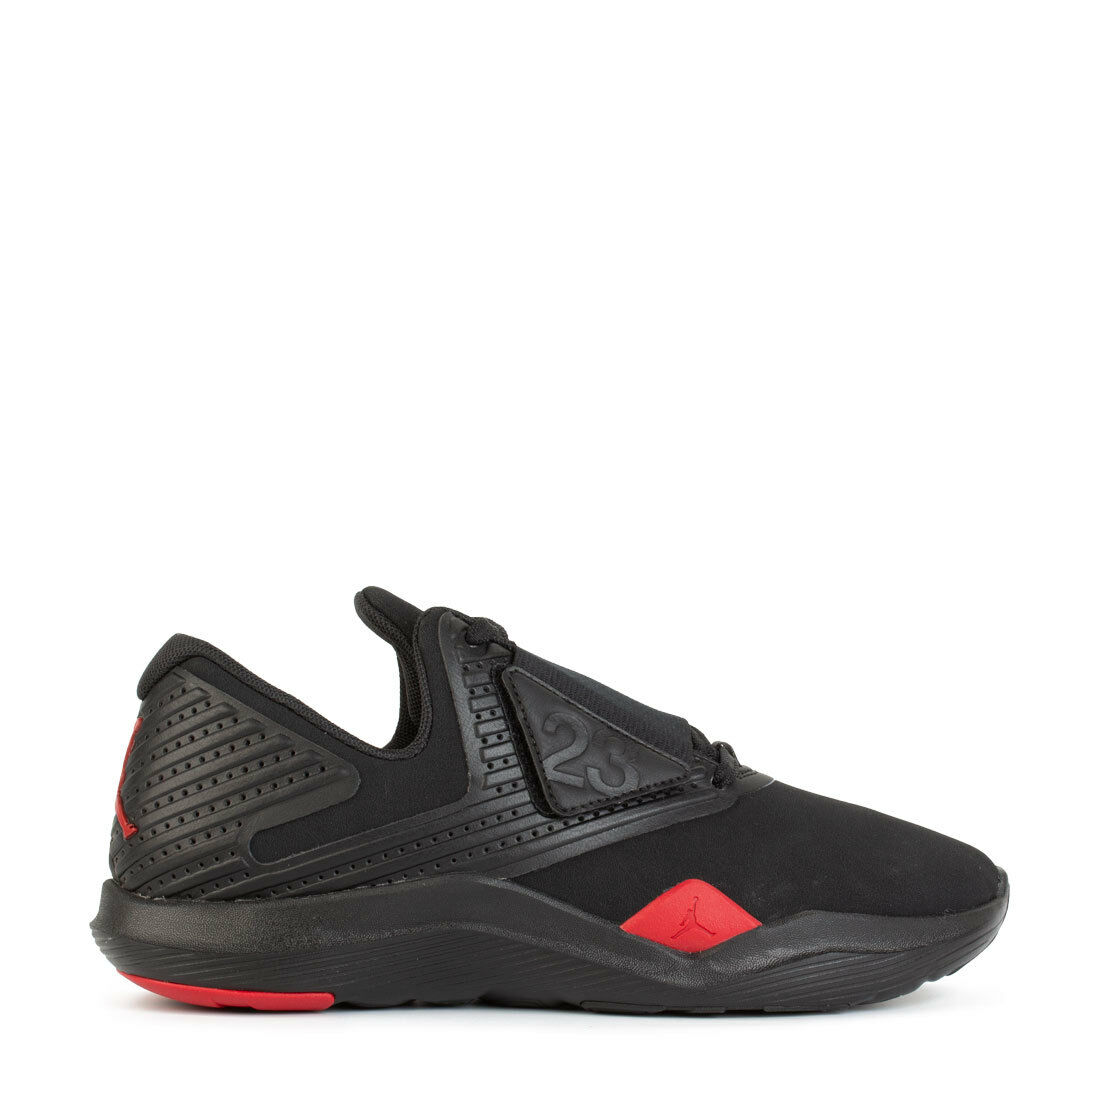 Men's Jordan Relentless Trainer Athletic Fashion Sneakers Black Red AJ7990 003